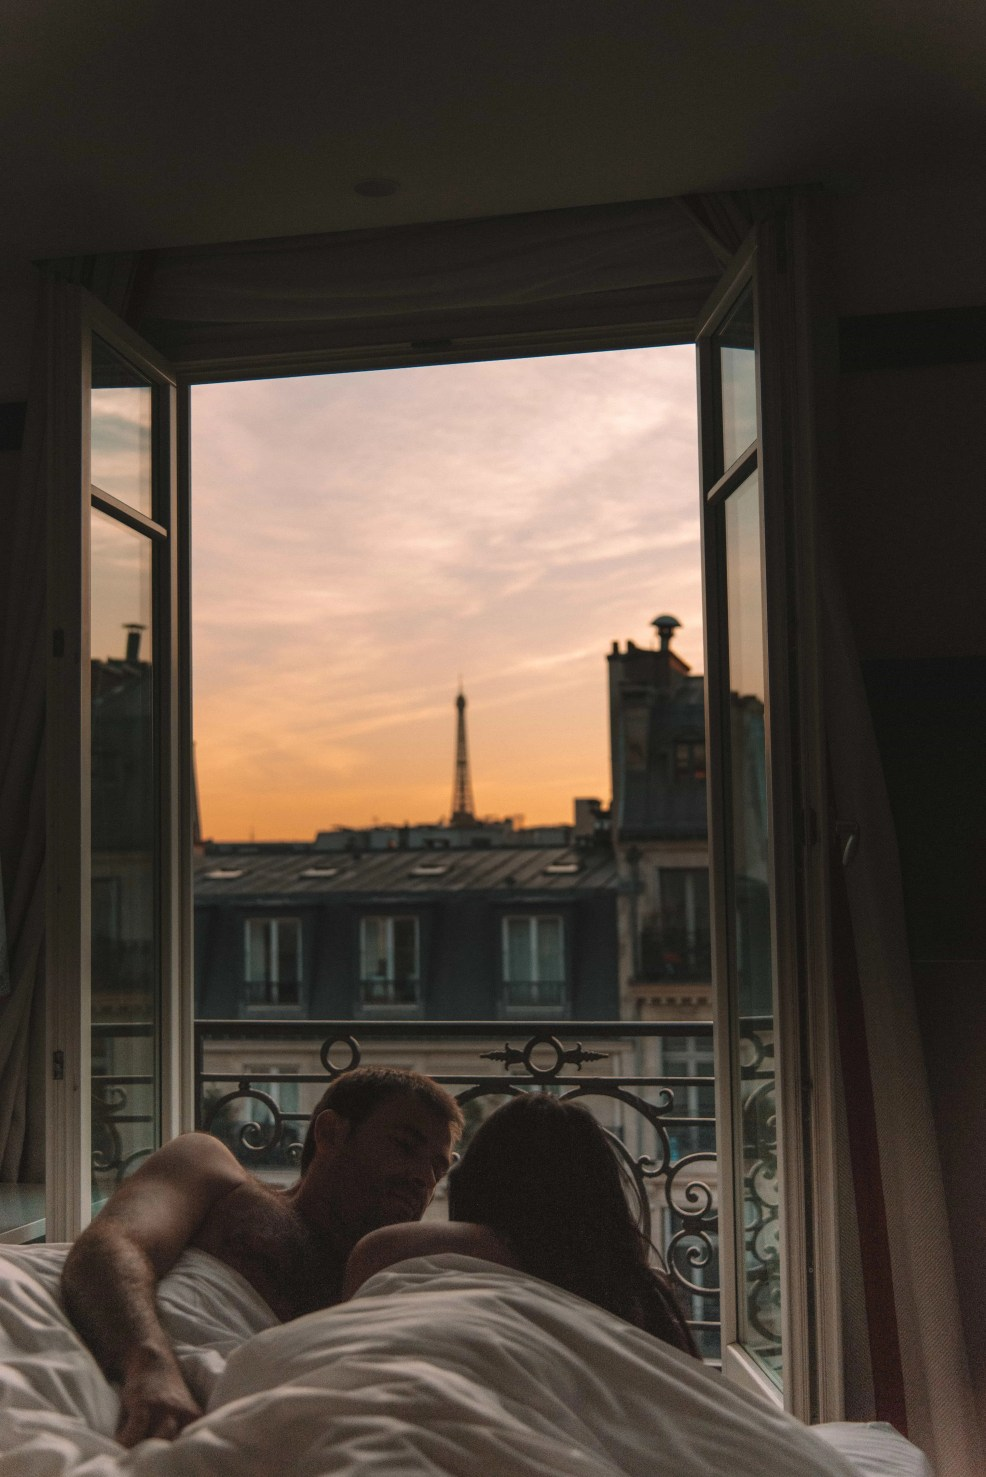 Most Instagrammable places in Paris, Room with a view